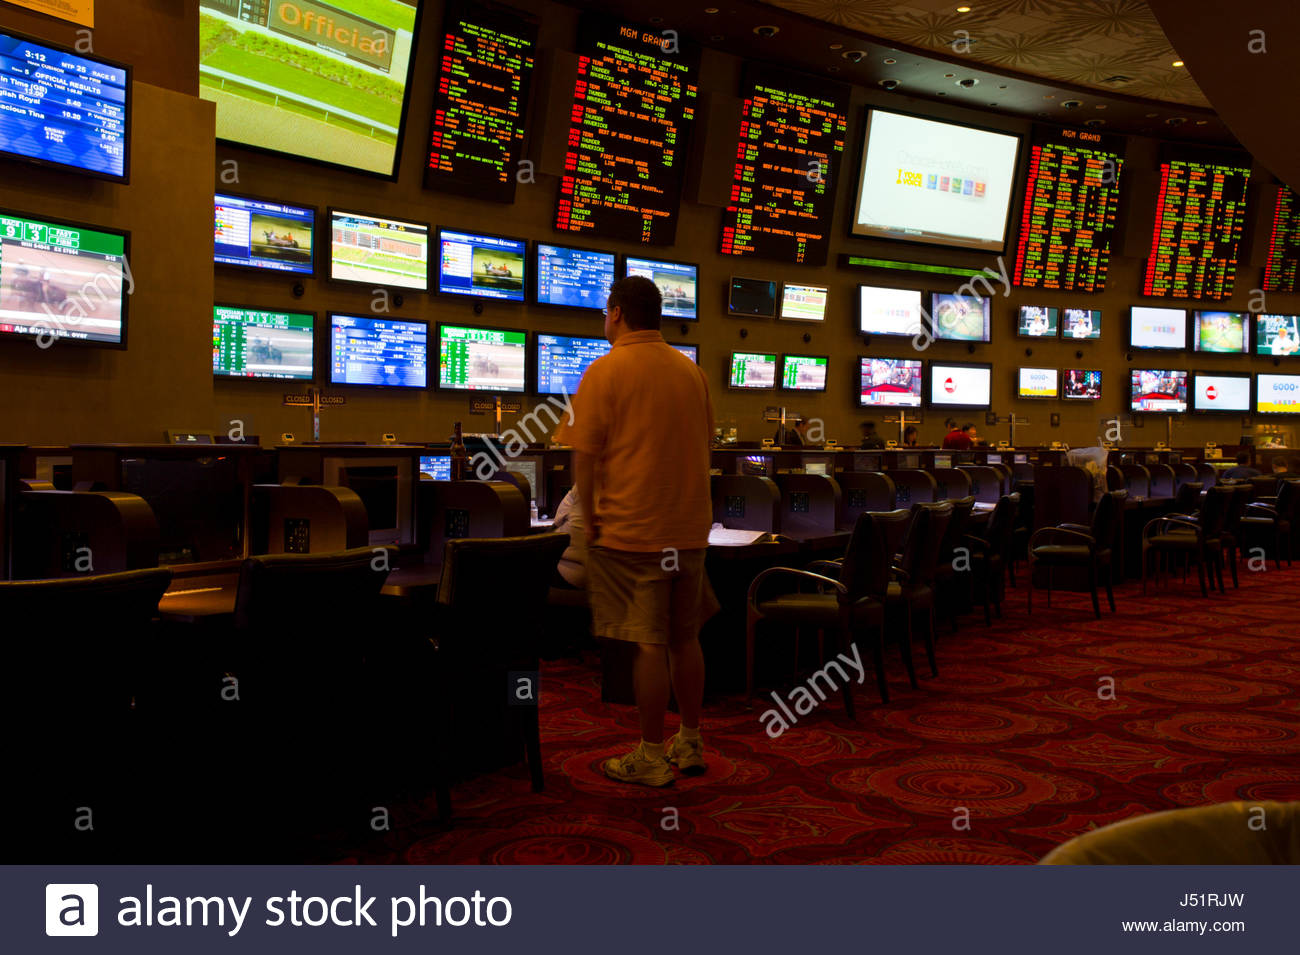 Many screens and televisions in the MGM Grand Casino, Las Vegas, Clark County, Nevada, USA - Stock Image